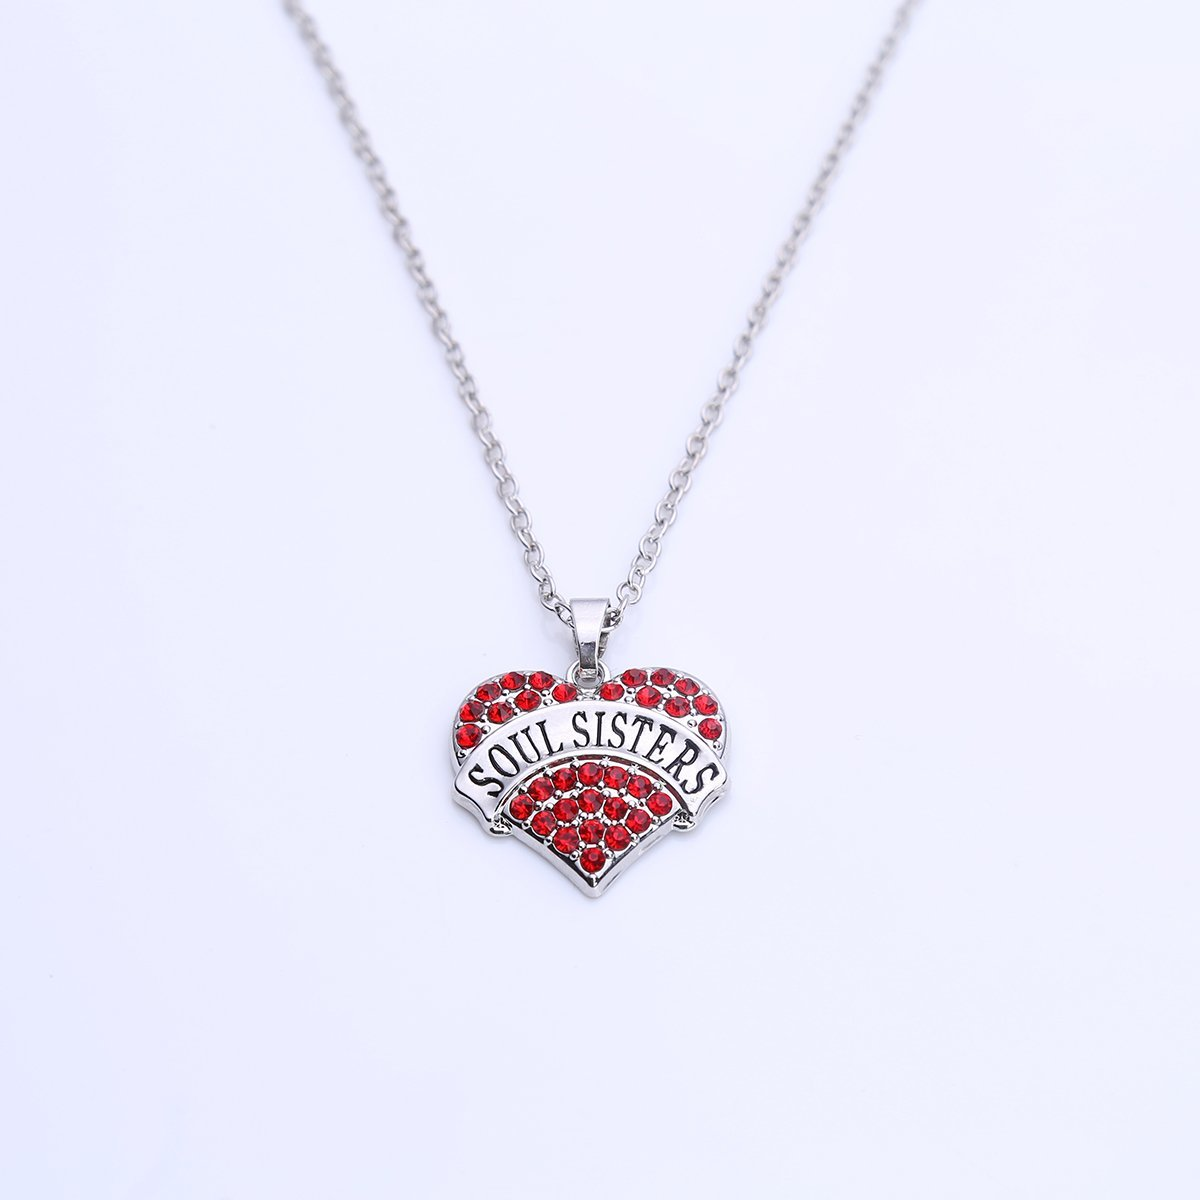 Sister Big SIS Middle SIS Little SIS Lil SIS Baby SIS Soul Sisters Crystal Heart Link Chain Necklace